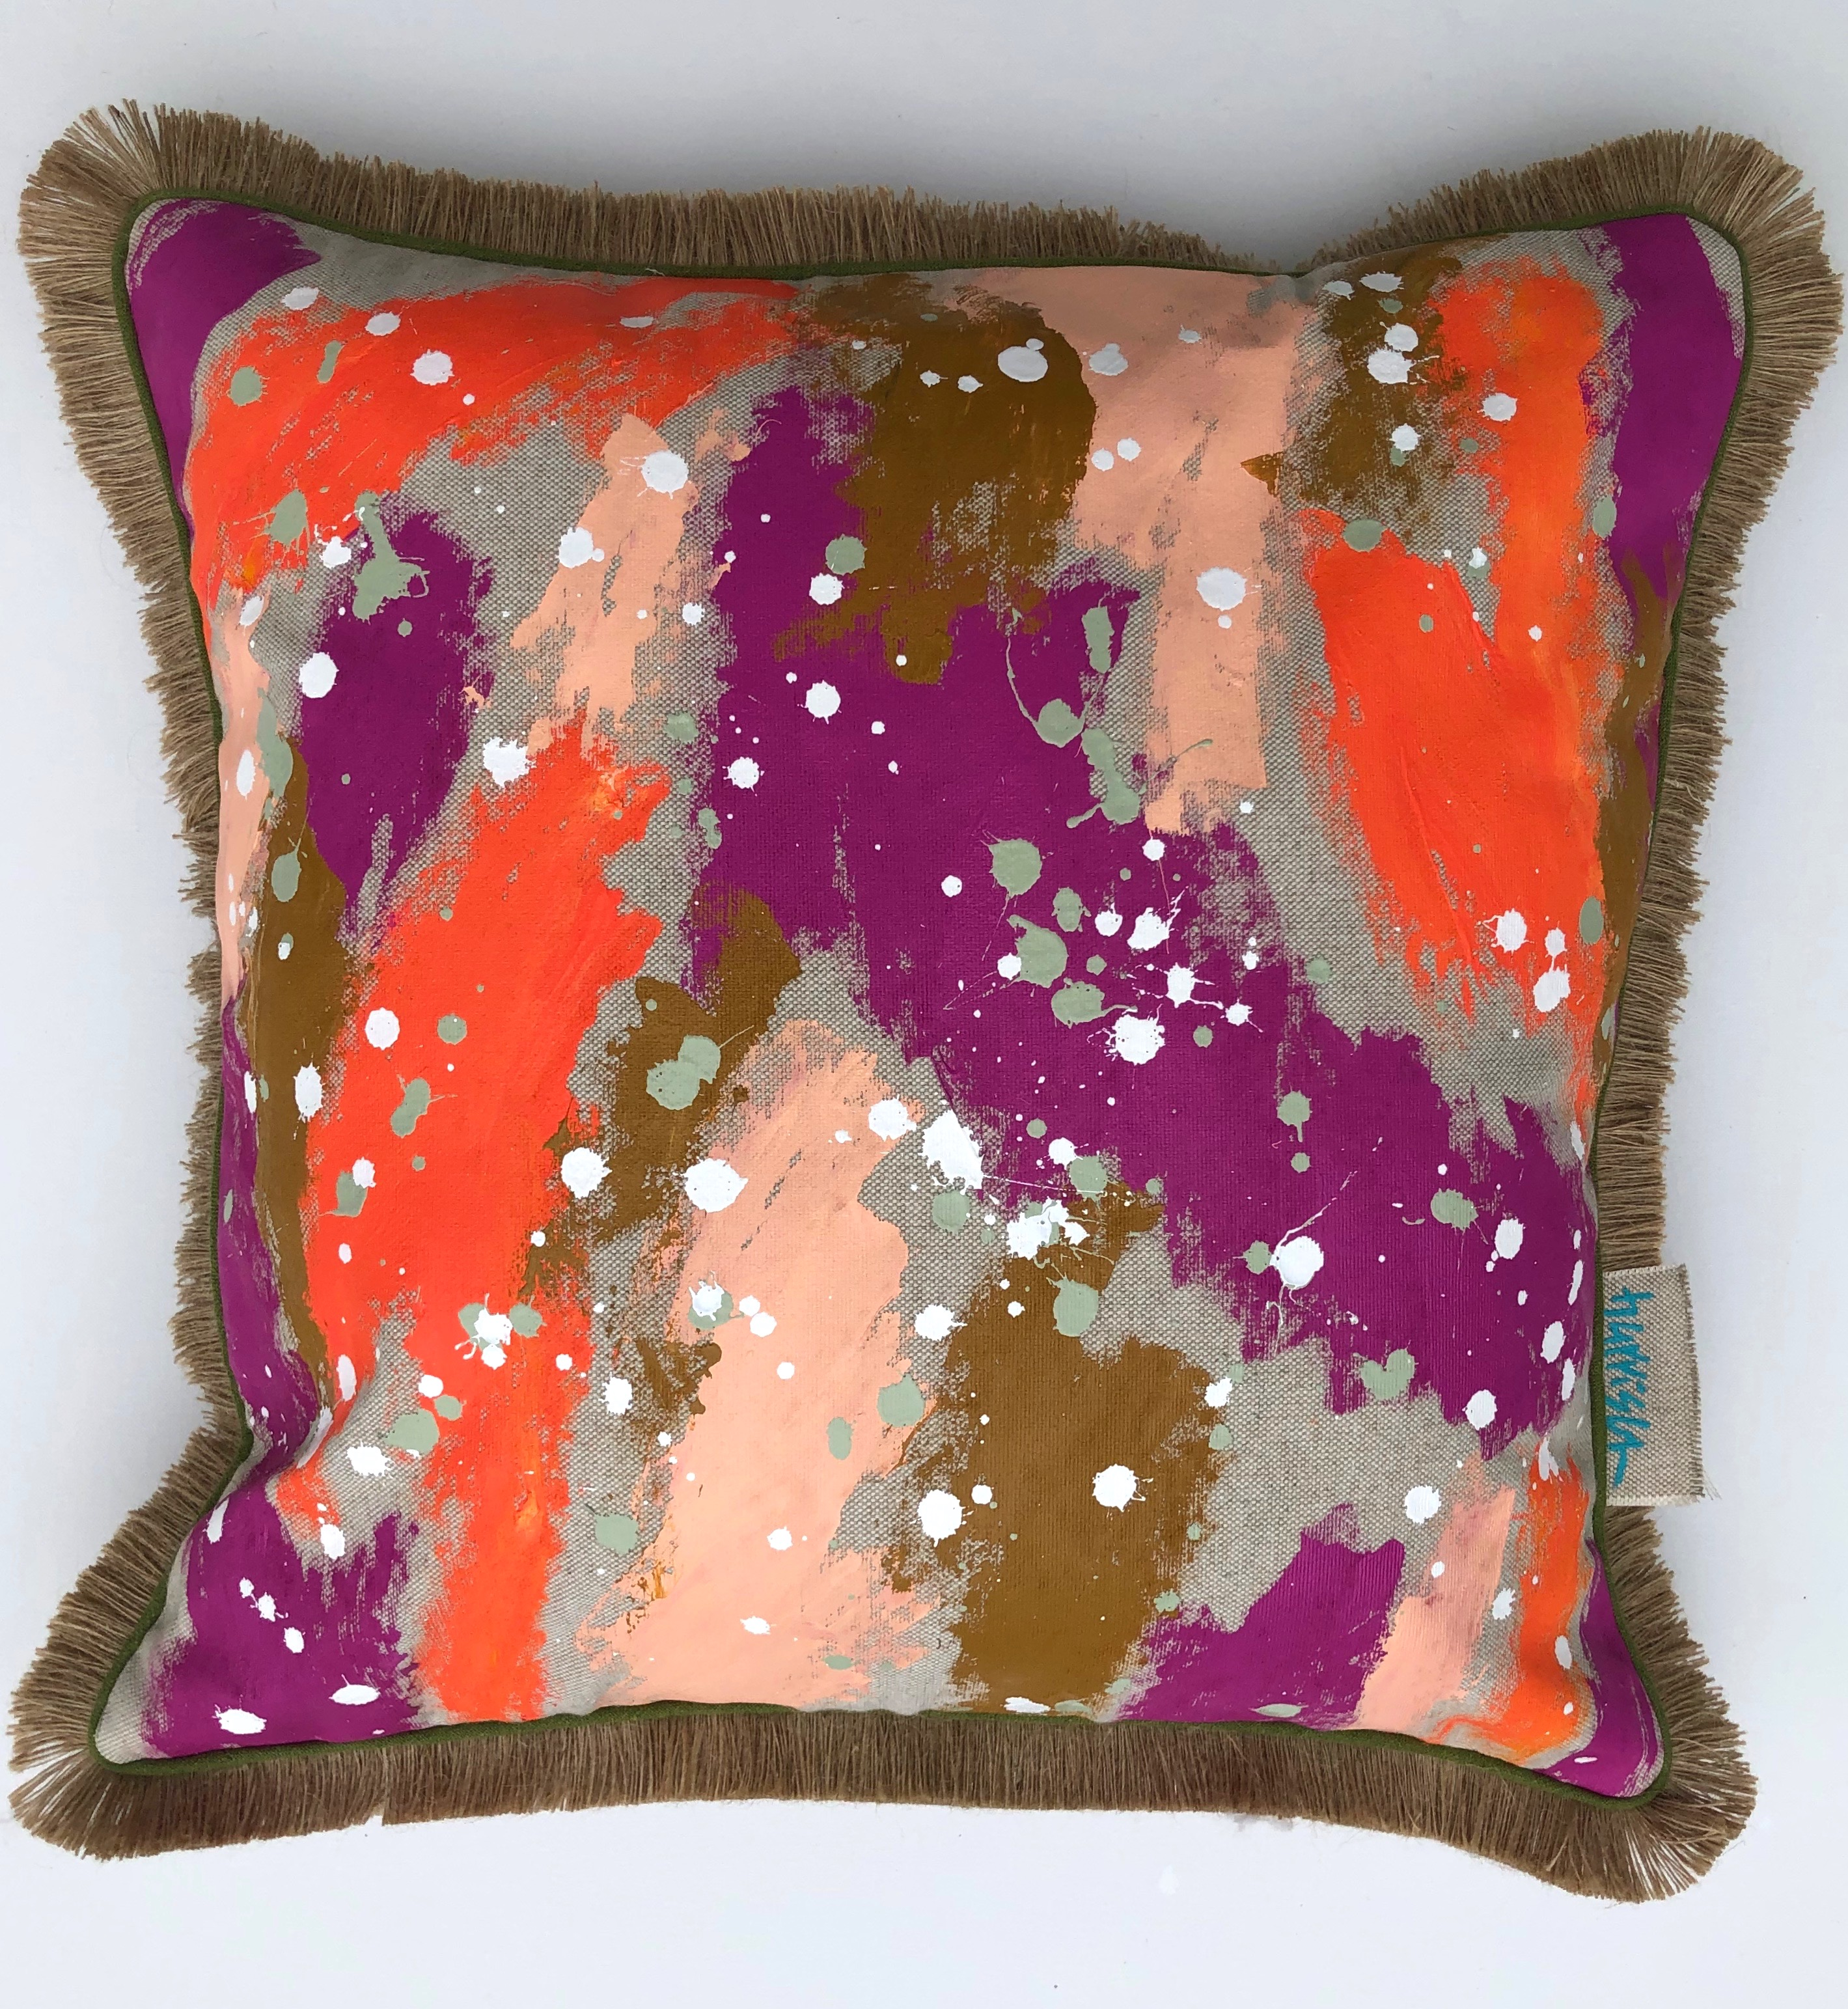 HUSTLE AND BUSTLE PILLOW II